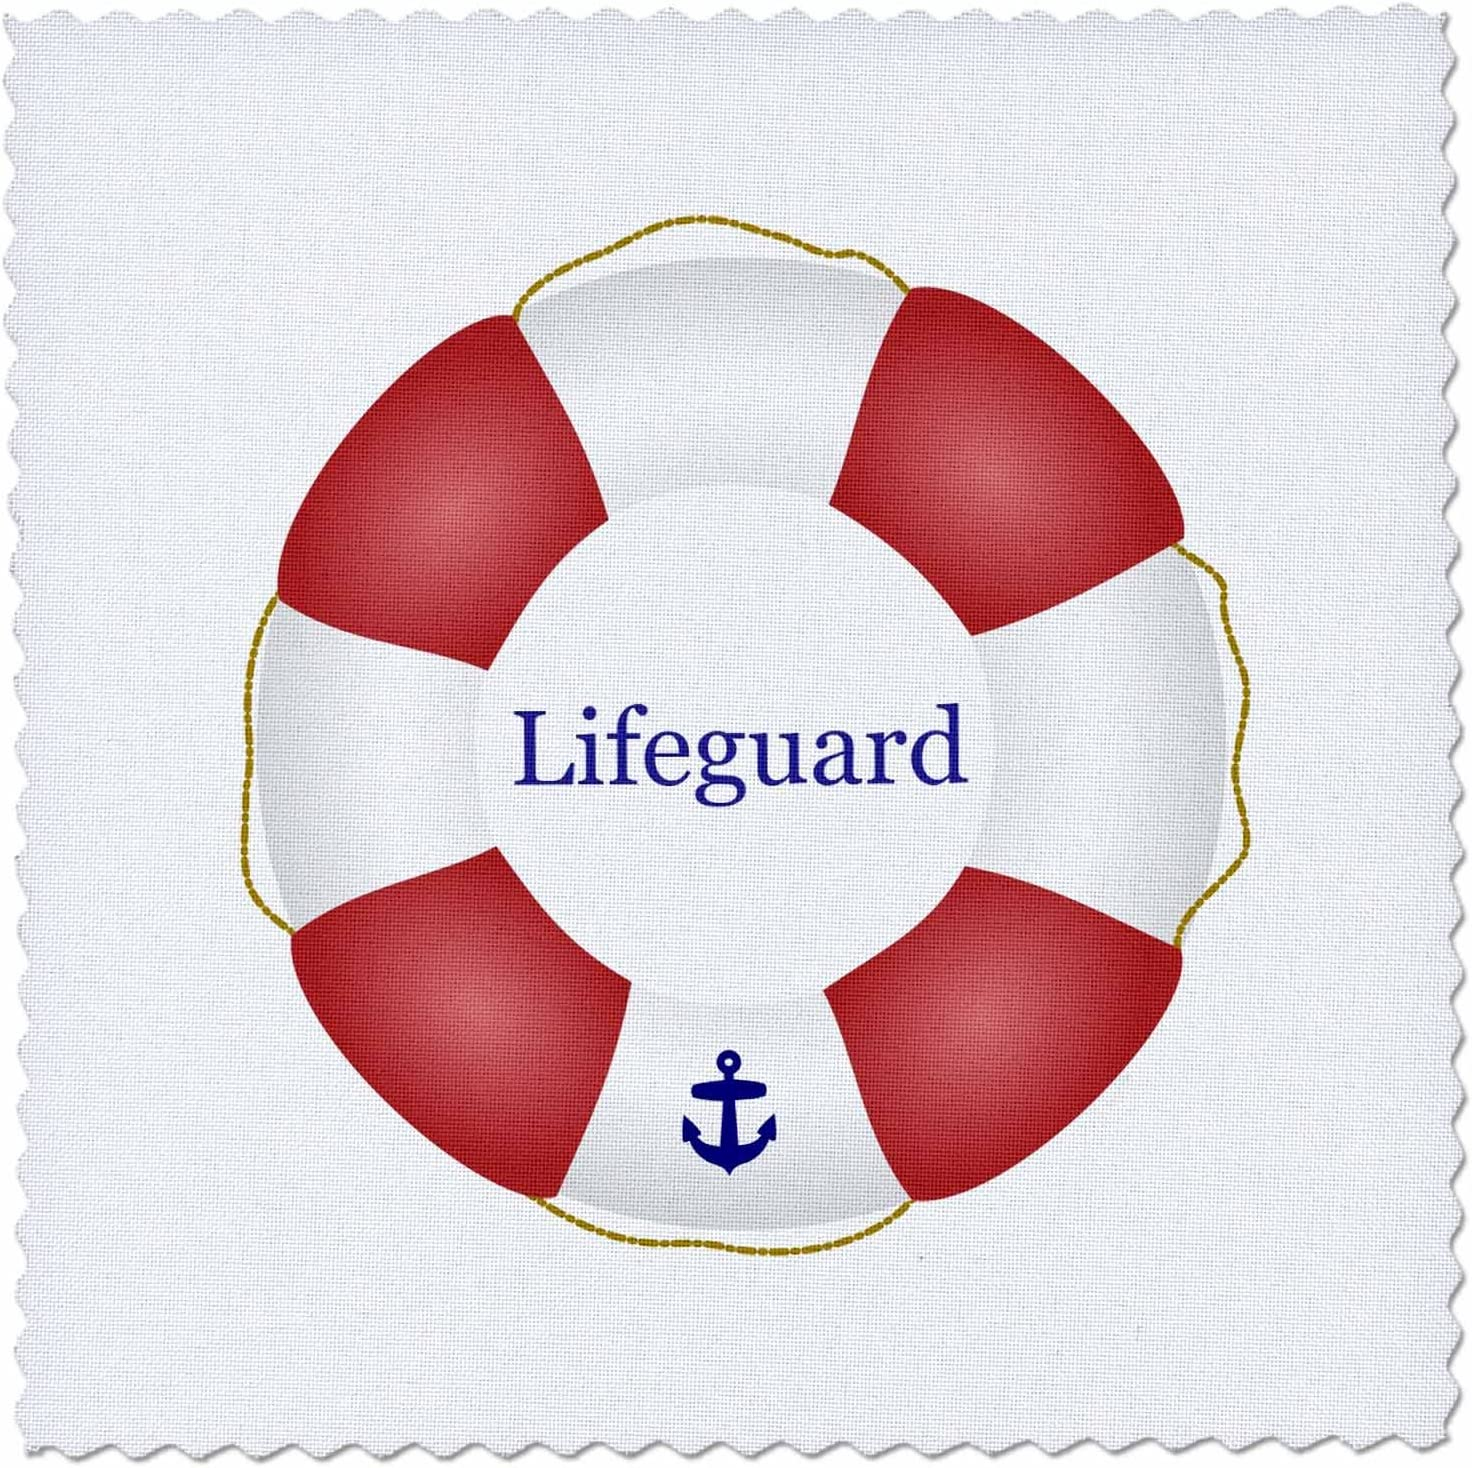 qs/_112970/_4 3dRose Lifeguard Lifesaver Swimming Pool Saver Preserver-sea Beach Life Guard red and White Float-Quilt Square 12-inch